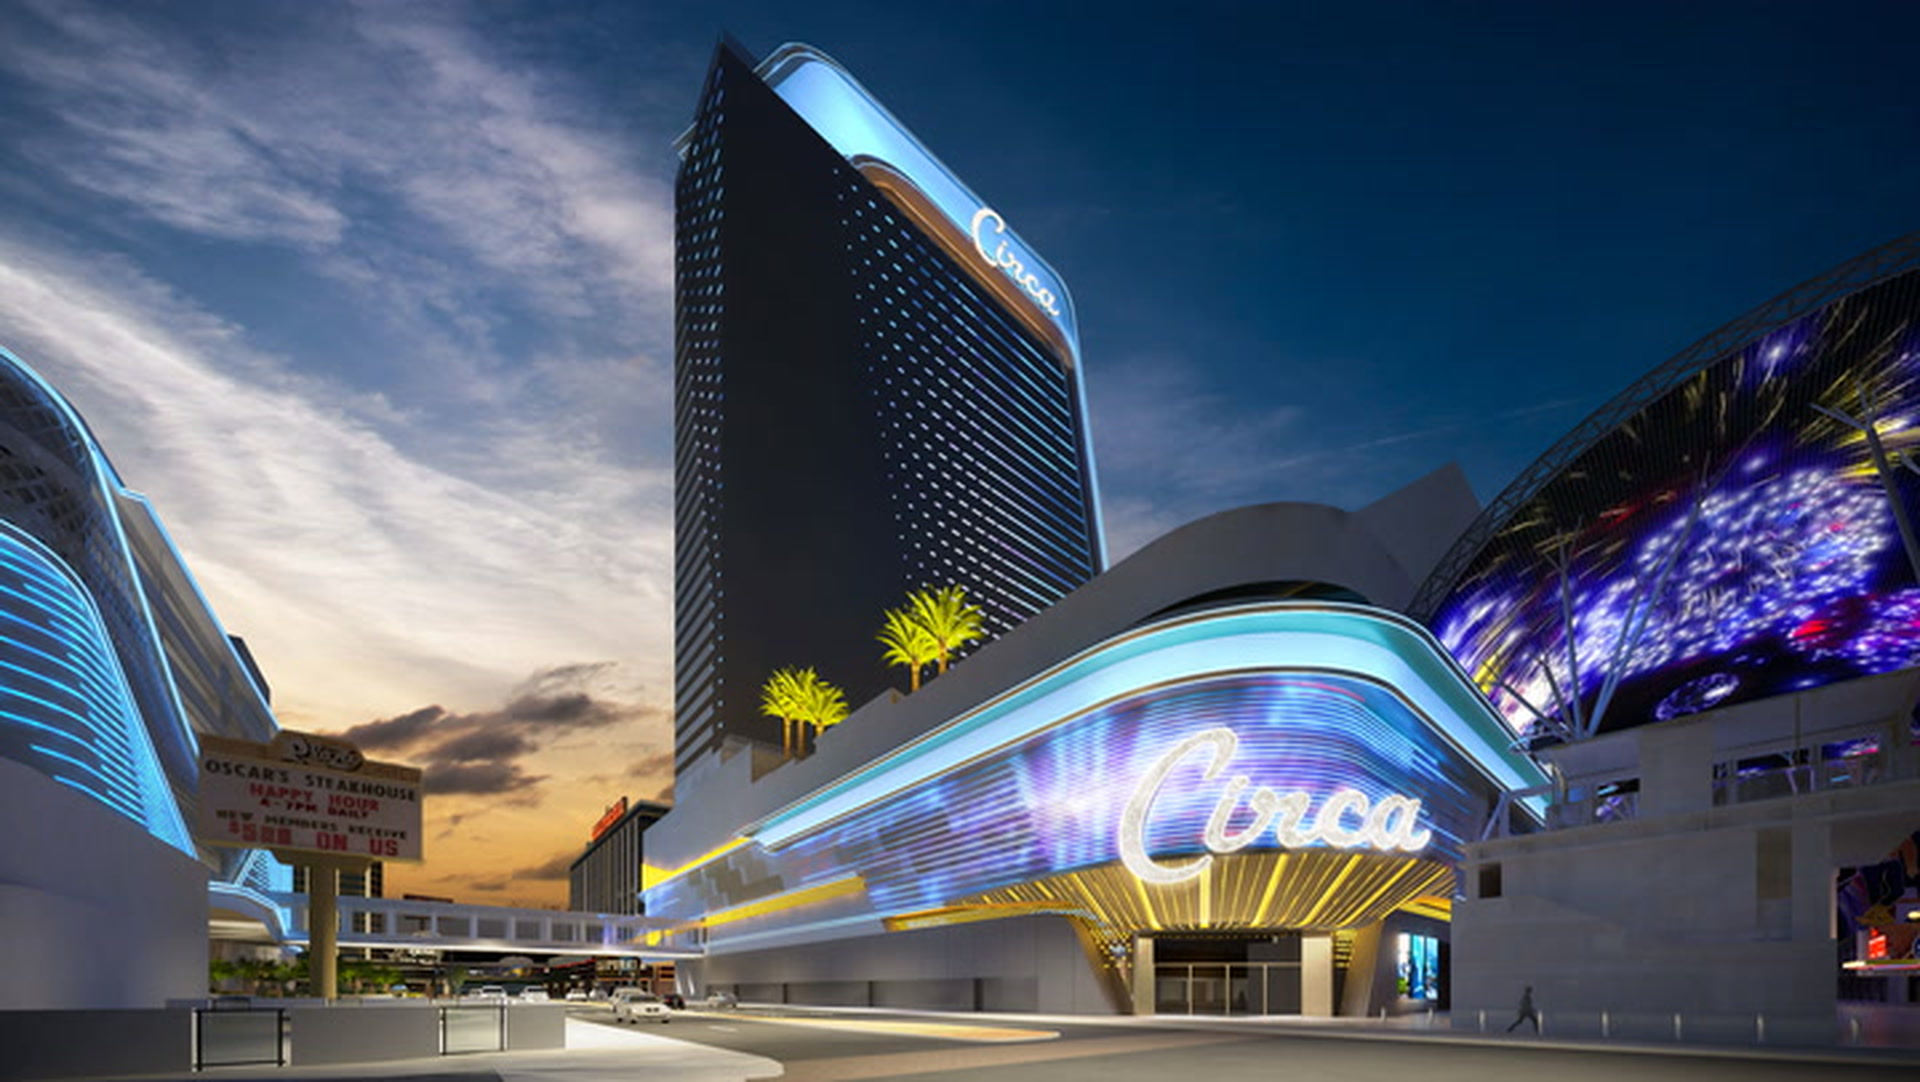 Circa Hotel Casino In Downtown Las Vegas Unveiled By Derek